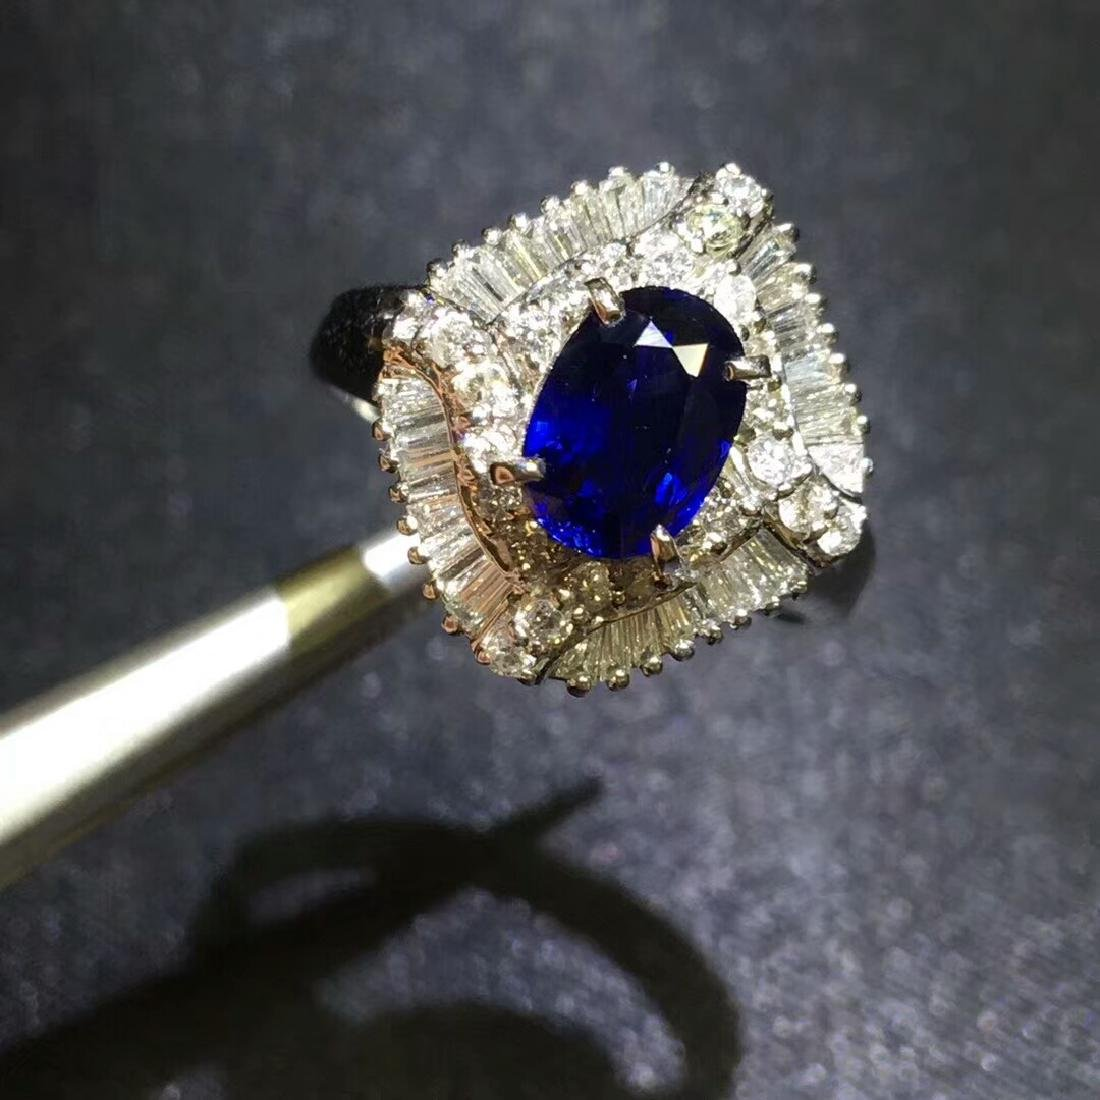 1.27ct Sapphire in Ring 18kt Gold - 3